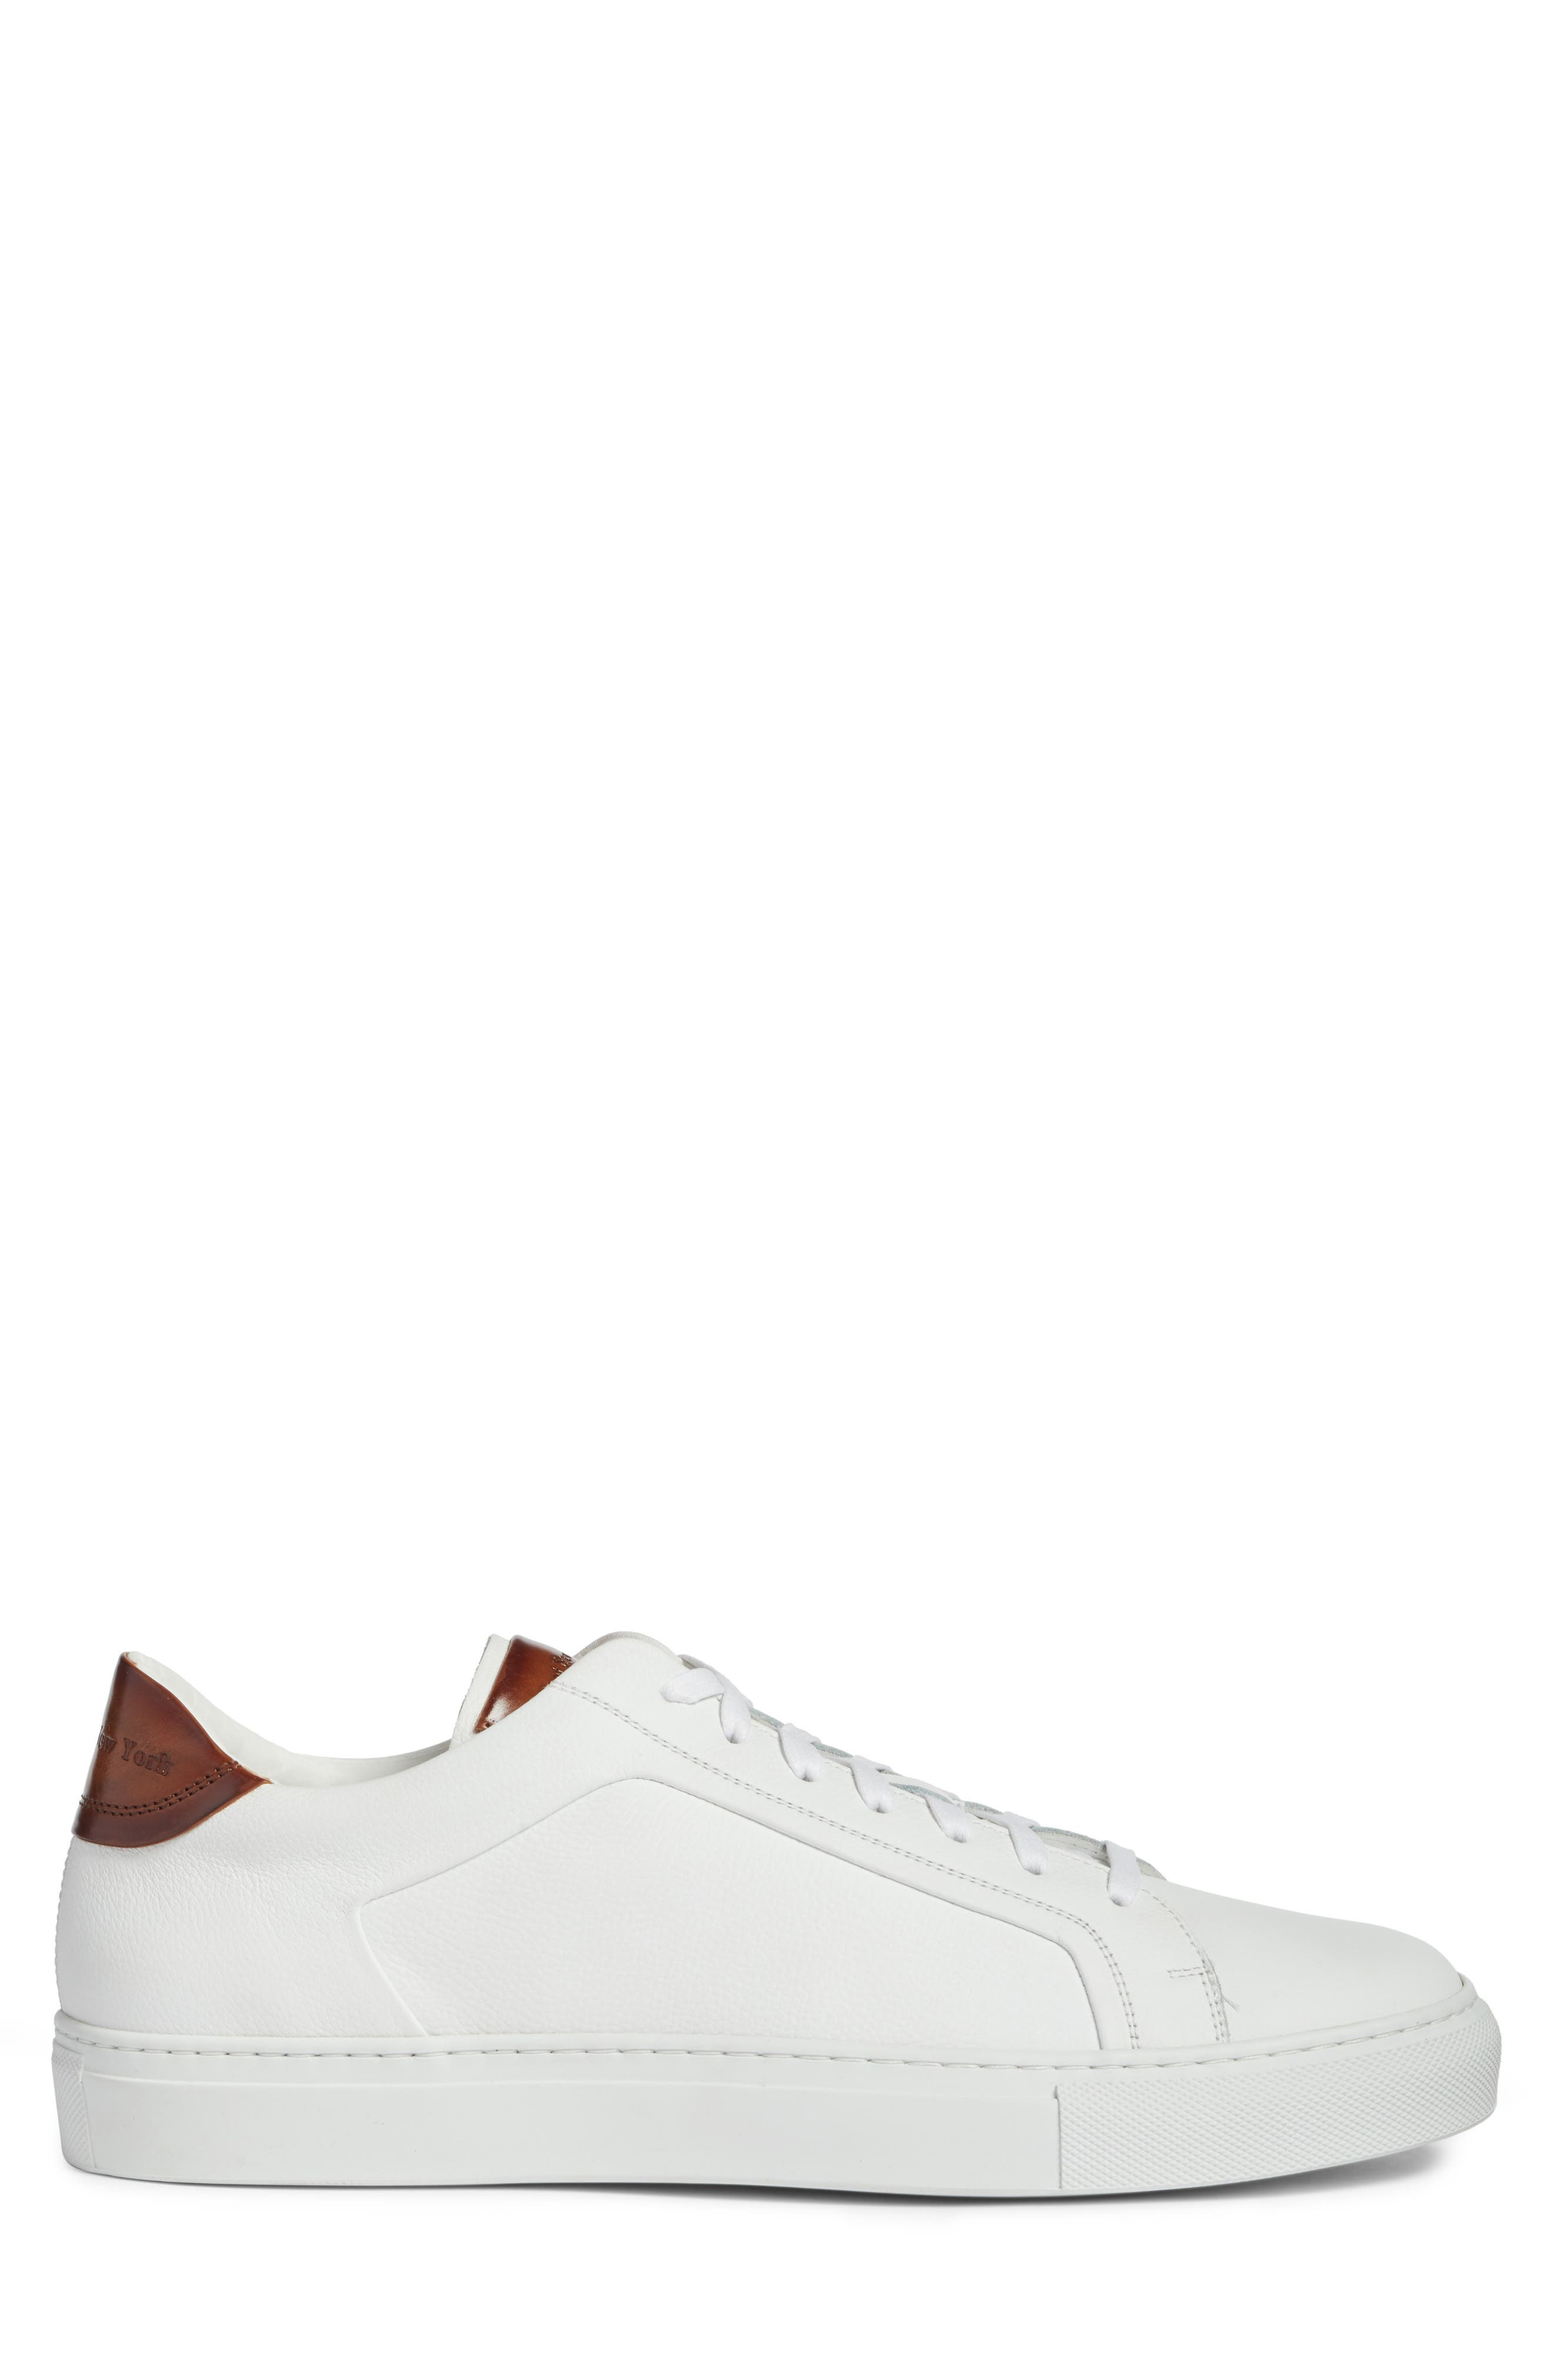 TO BOOT NEW YORK, Carlin Sneaker, Alternate thumbnail 3, color, WHITE/ TAN LEATHER